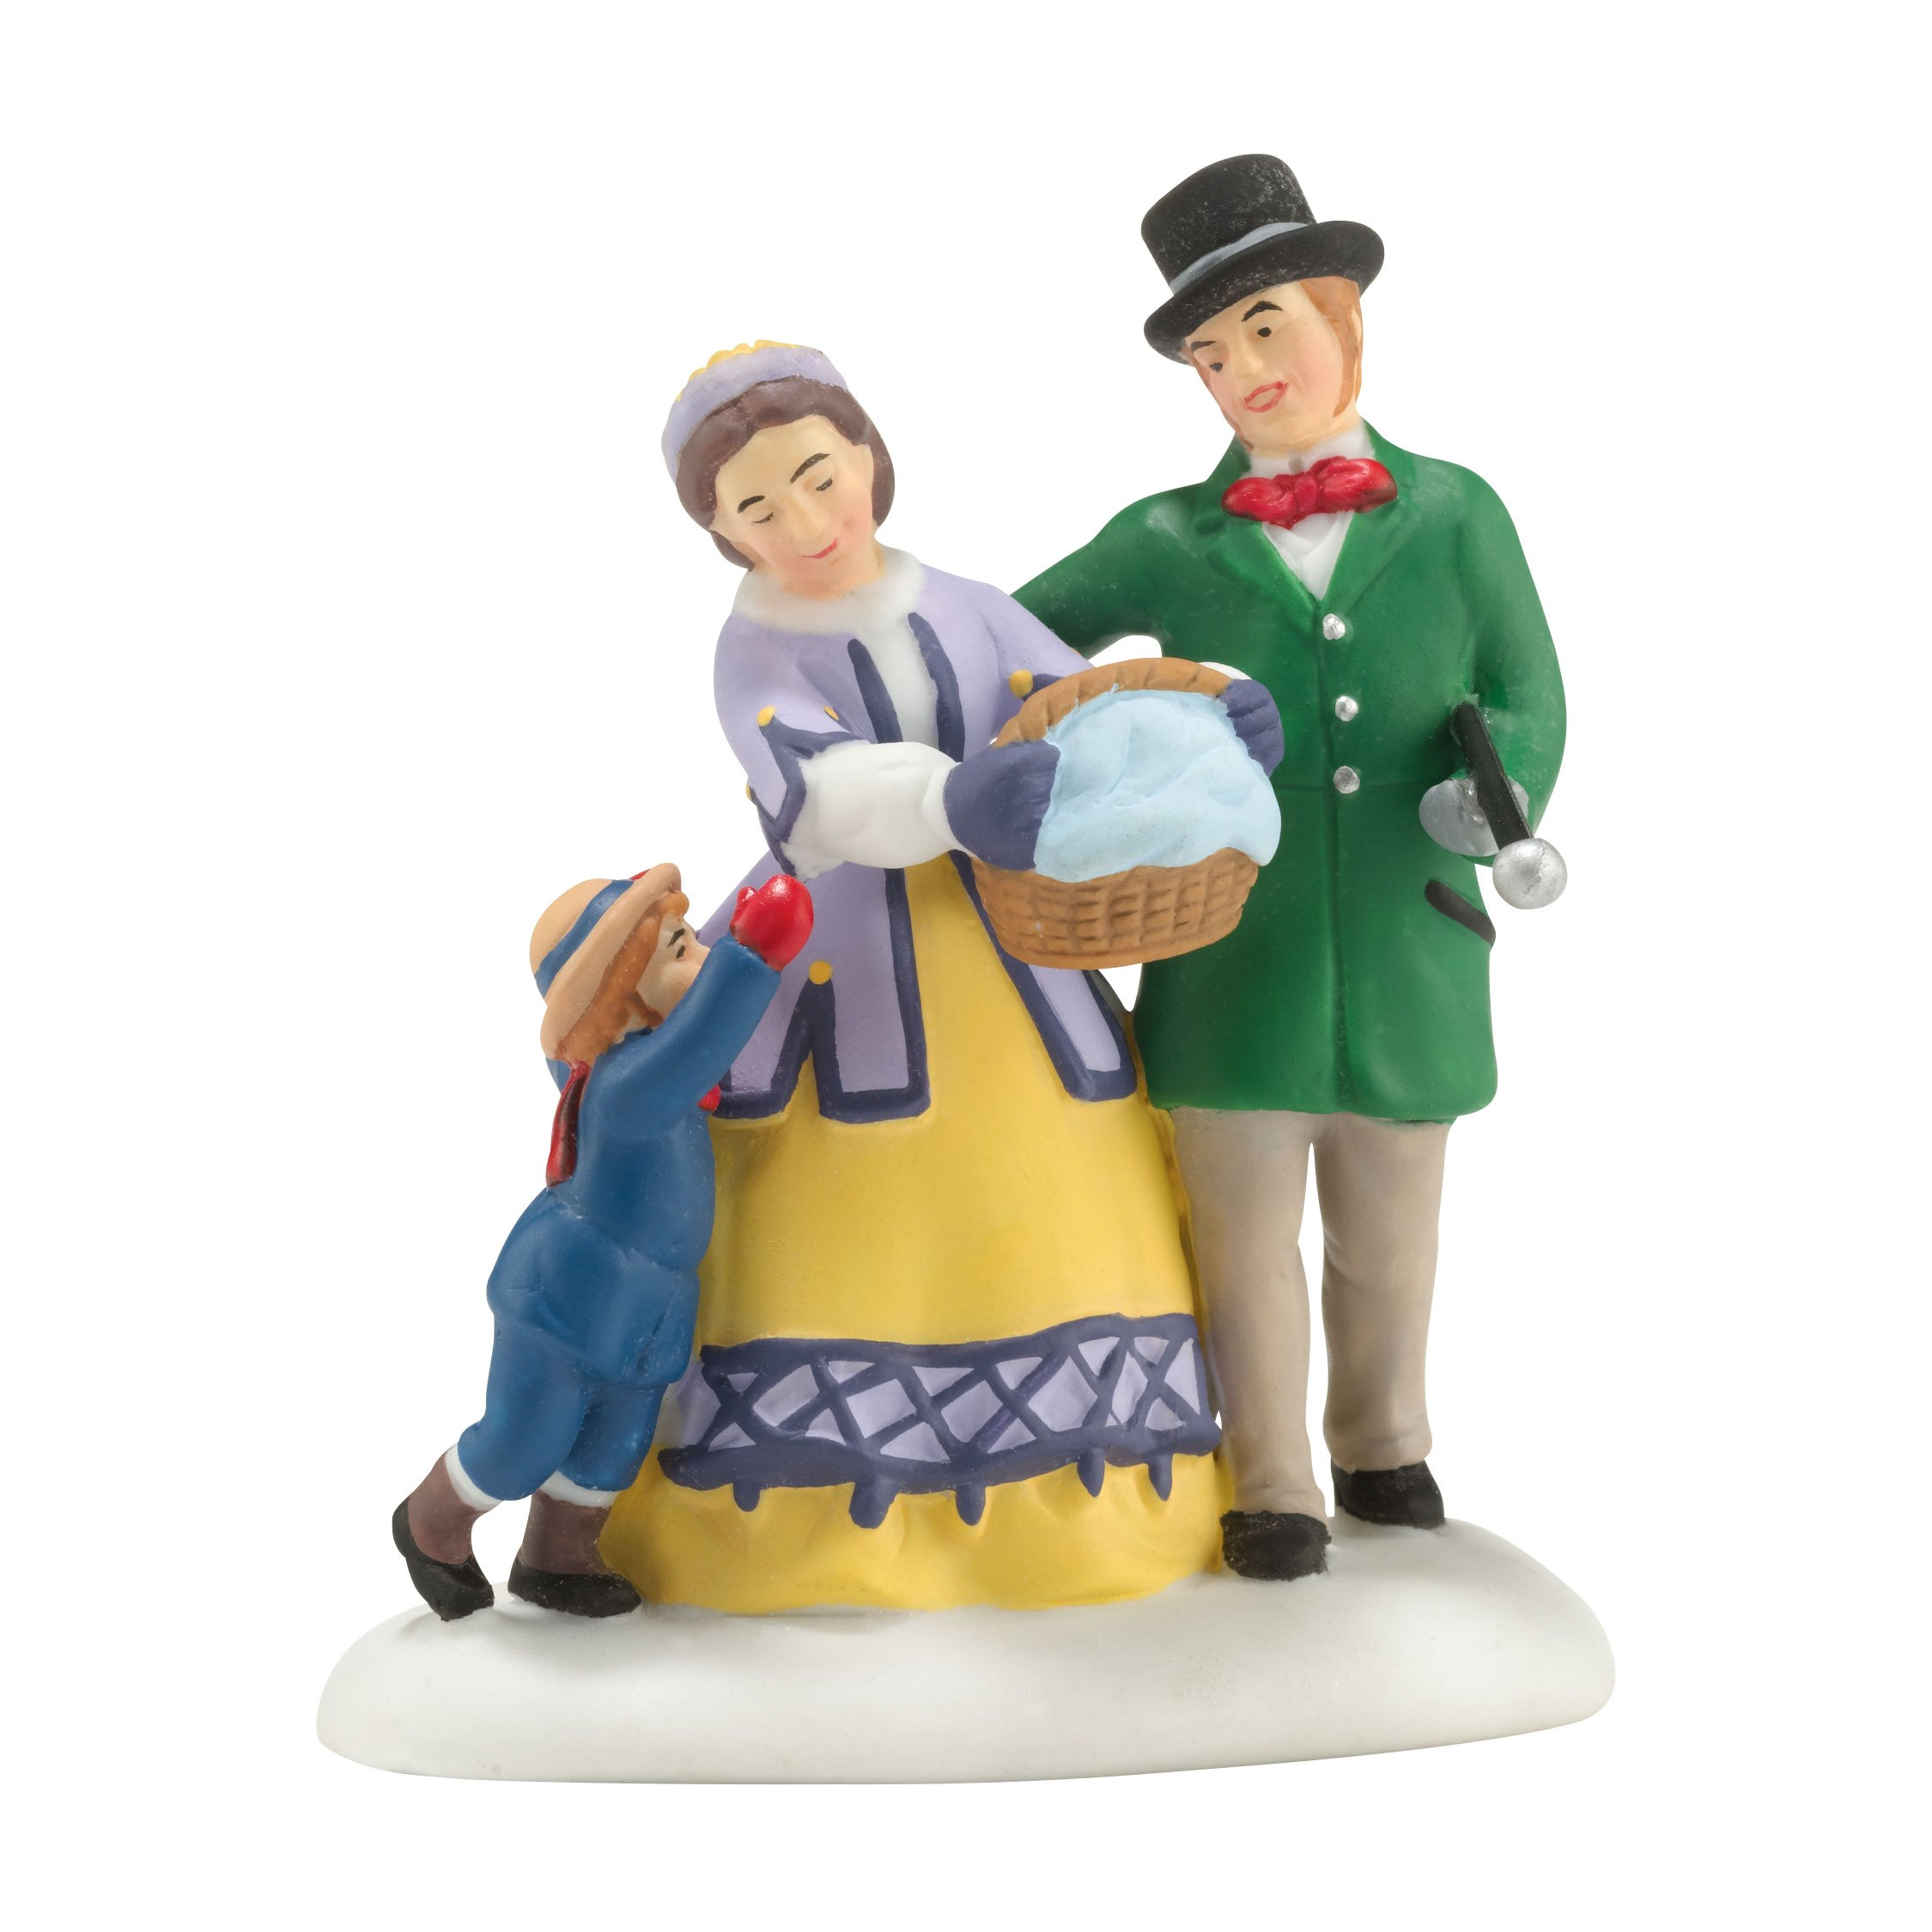 Department 56 Dicken's Village Off to the Festivities Accessory Figurine, 1.57 inch